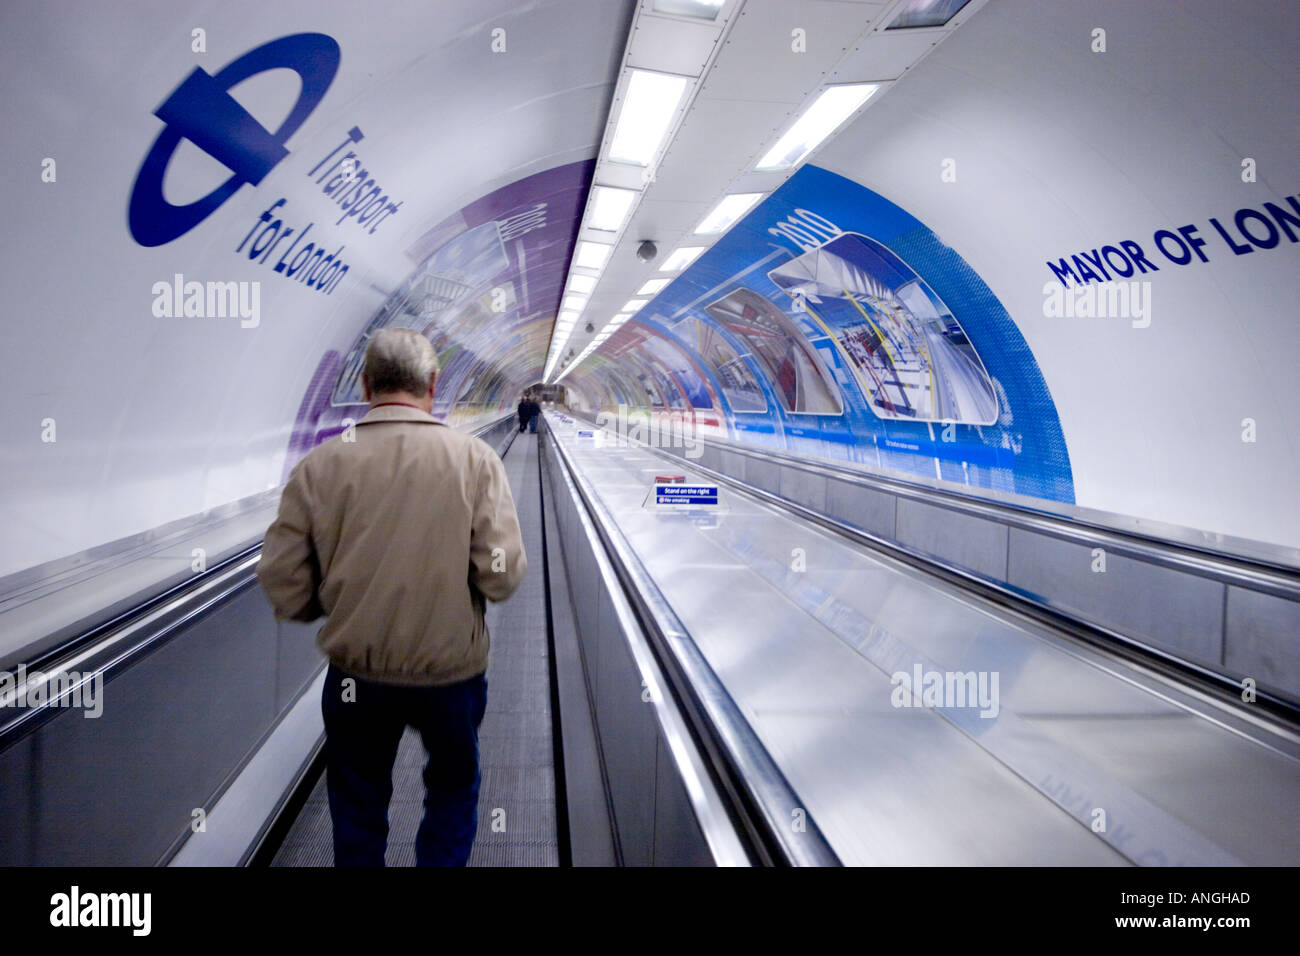 ... Travelator Moving Staircase At Bank Station With TFL Transport For  London And Mayor Of London Information